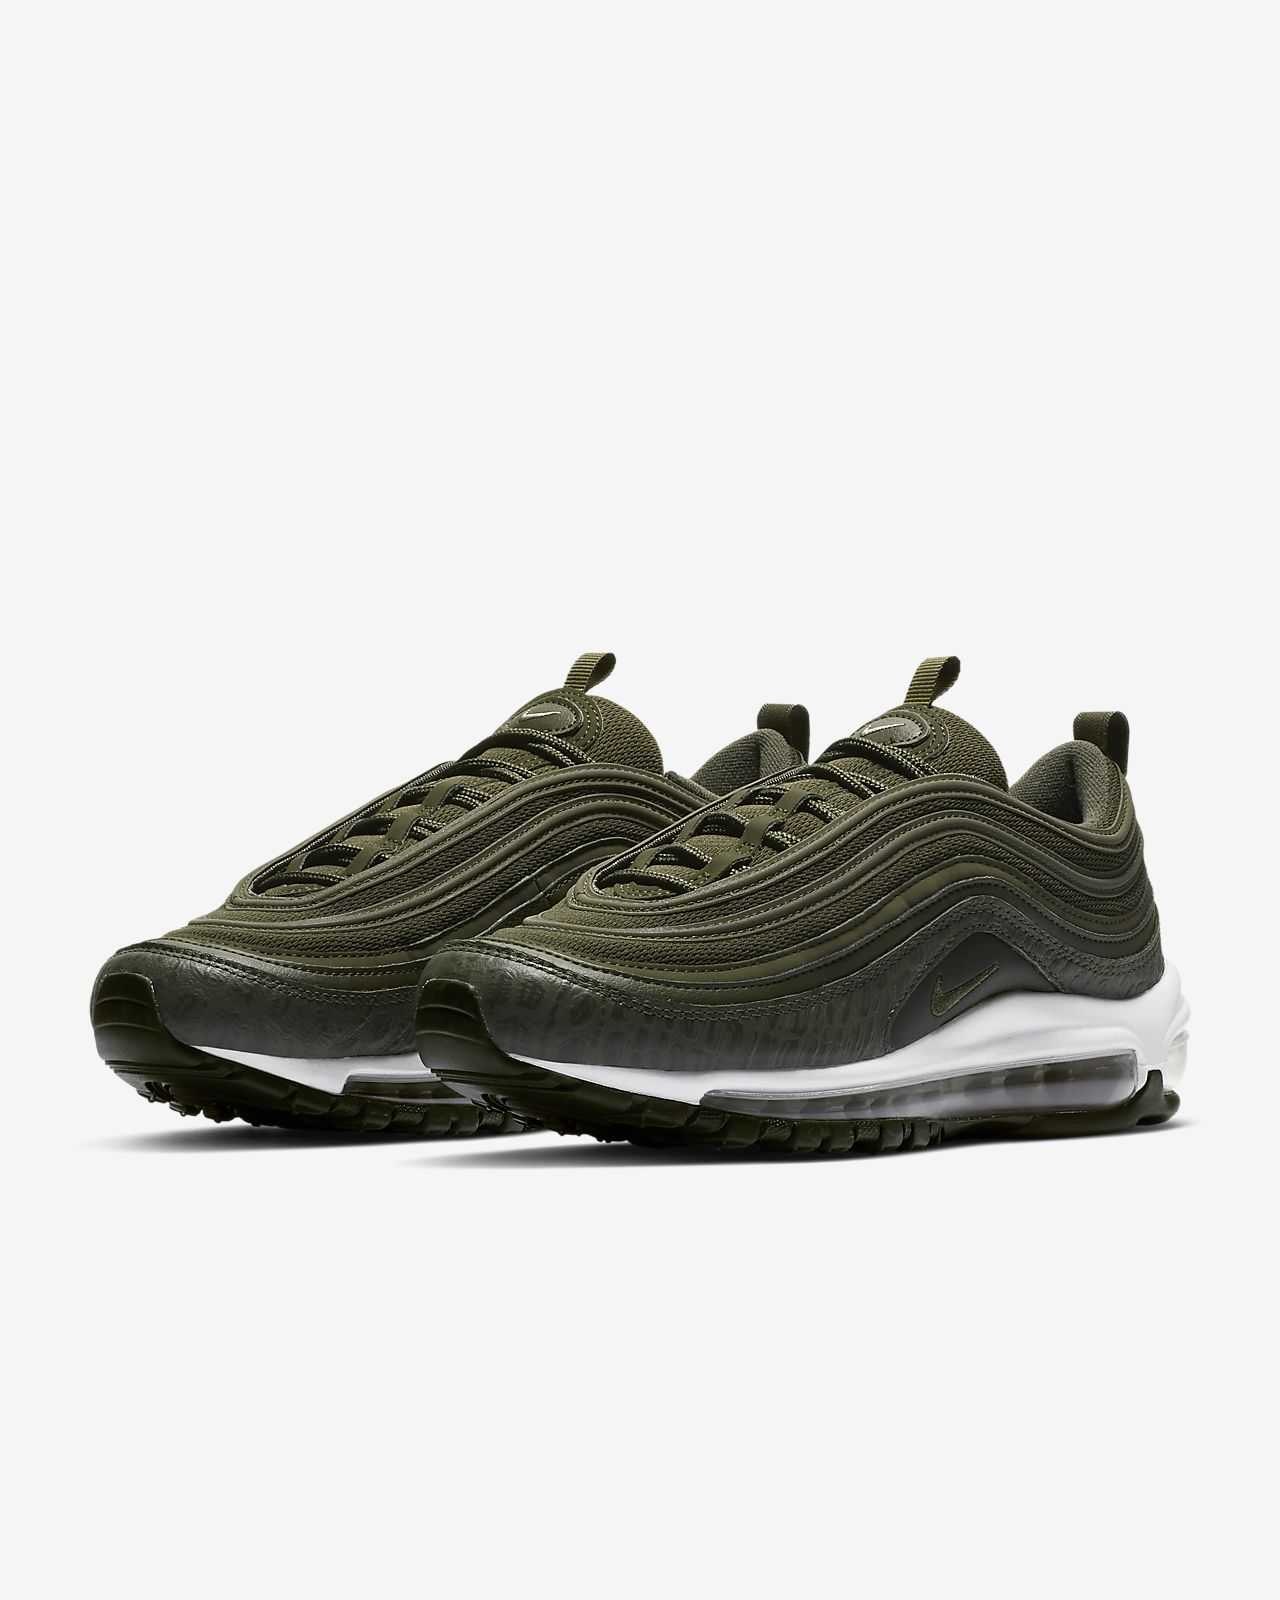 72578887946a Nike Air Max 97 LX Women s Shoe. Nike.com AU